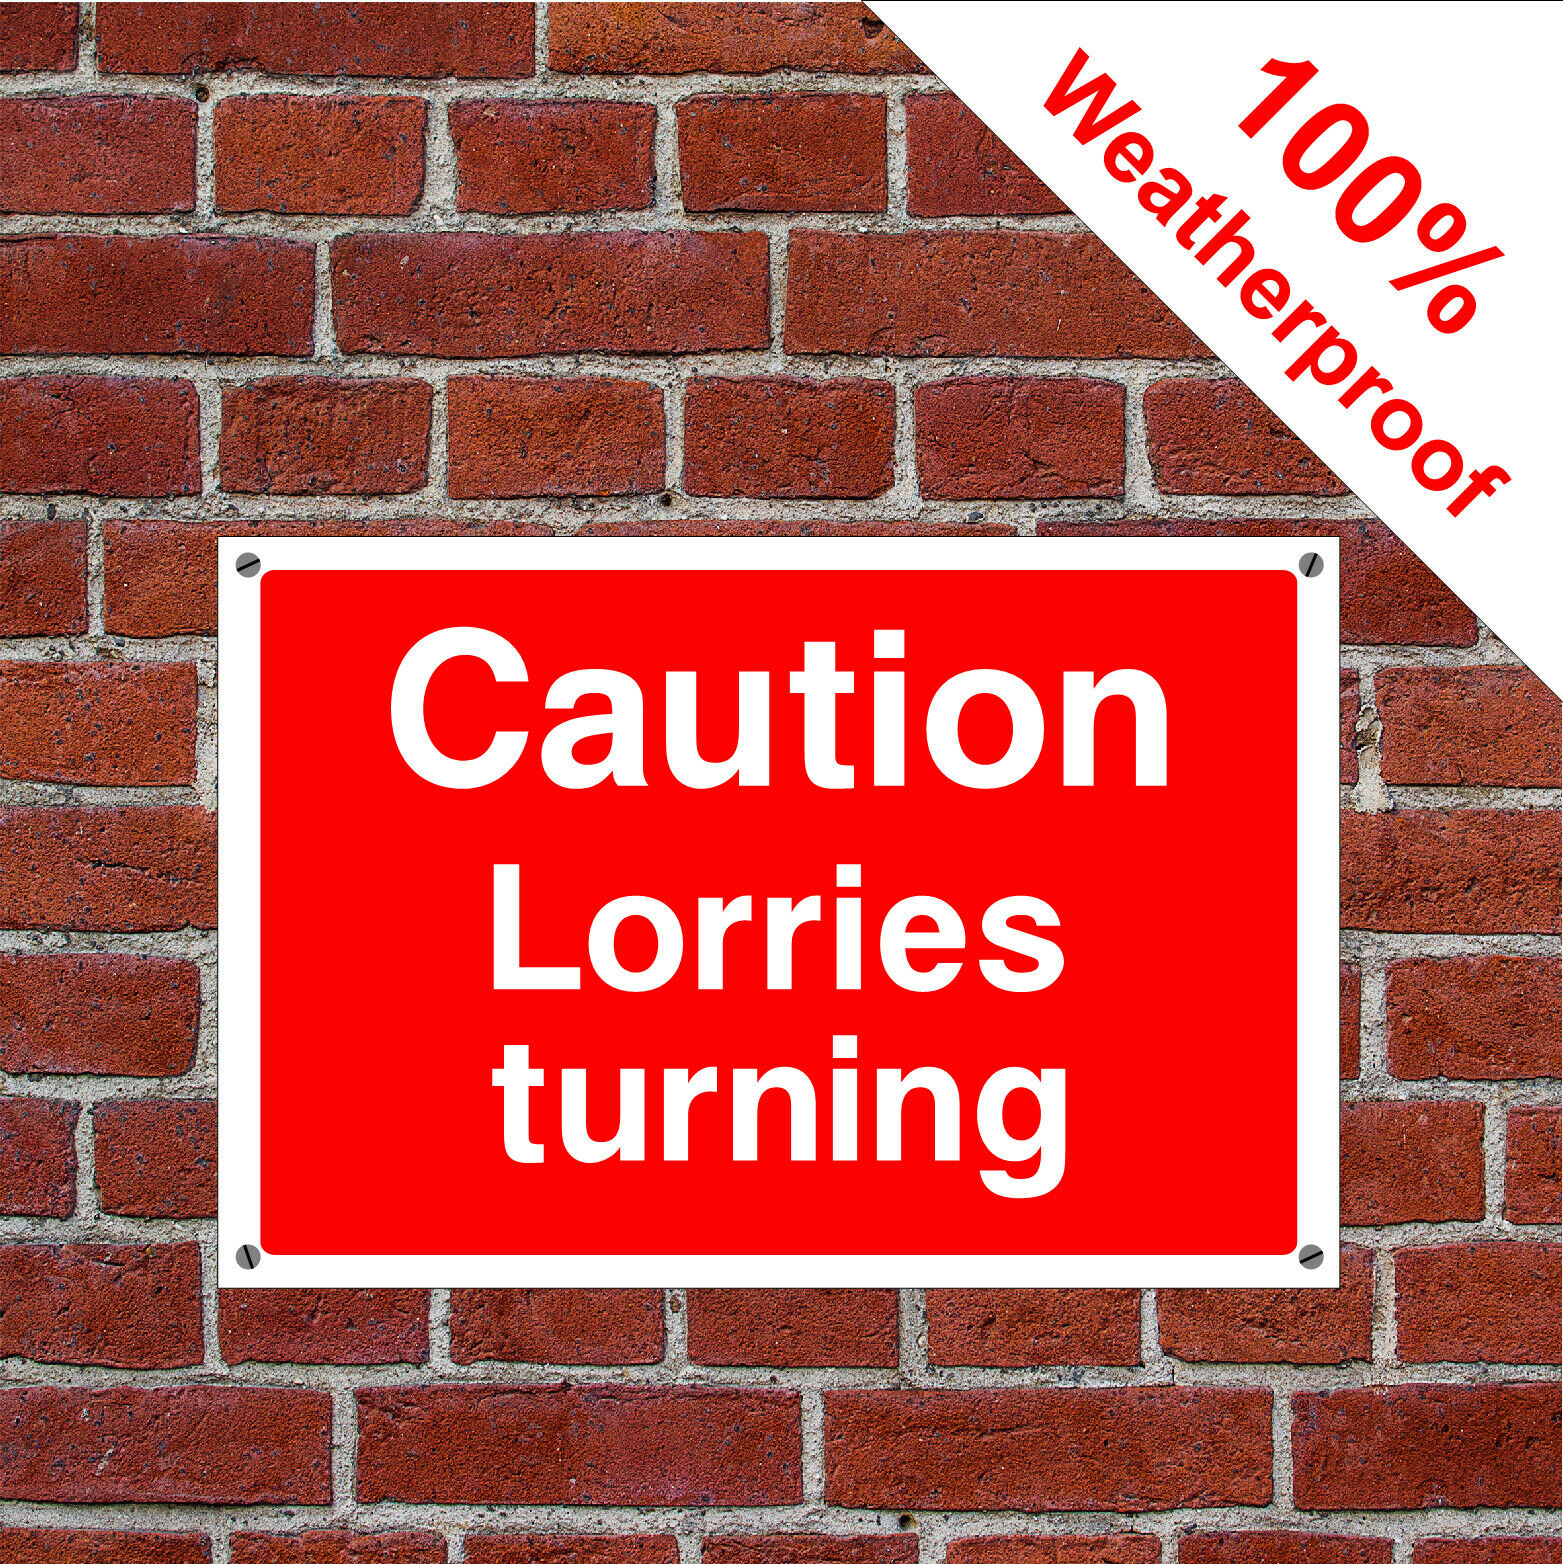 Caution lorries turning Health and safety signs CONS066 durable and weatherproof